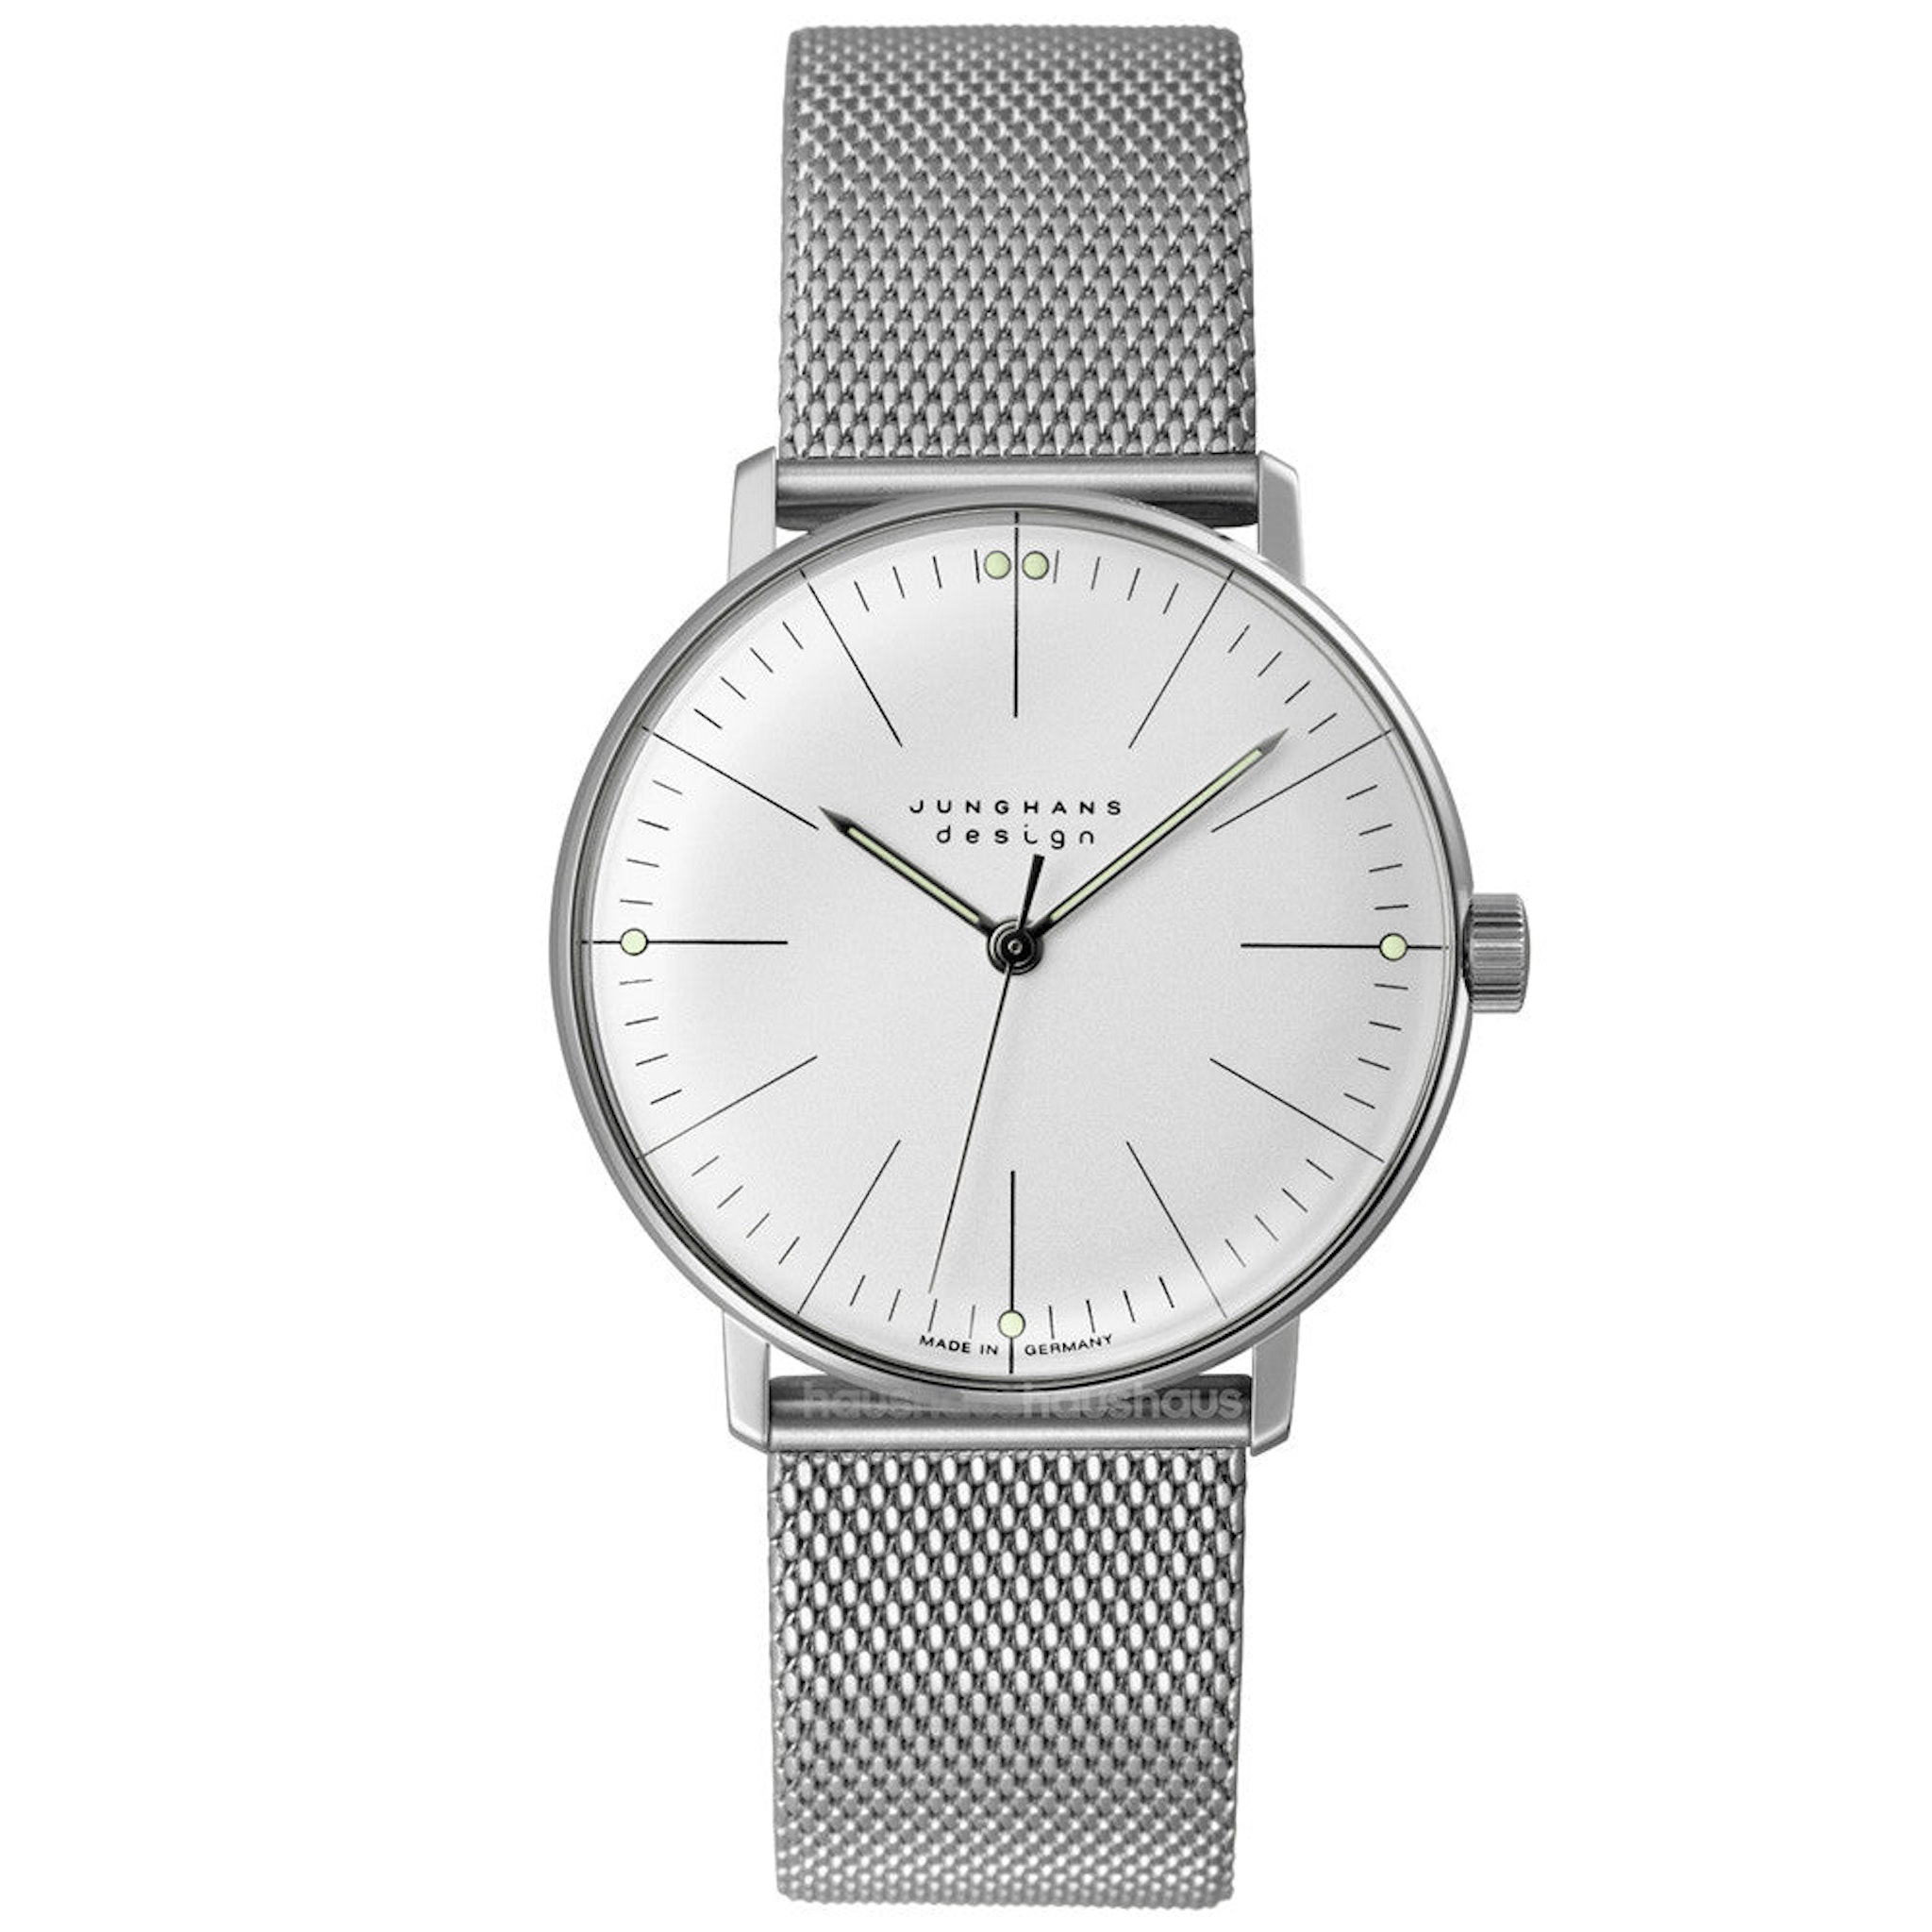 Max Bill 027/3004.44 Handwinding watch by Junghans